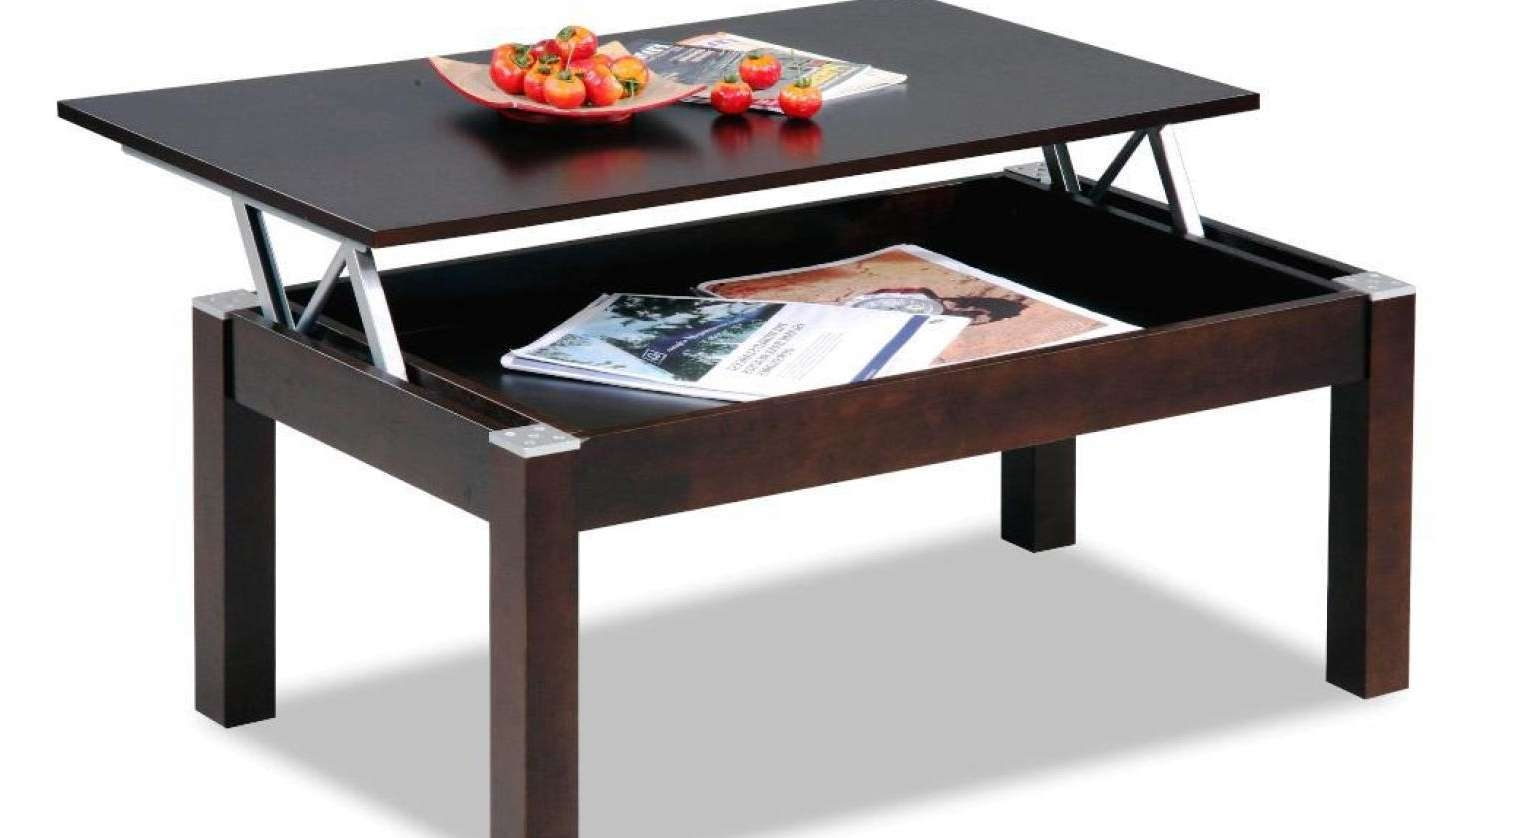 Most Current Waverly Lift Top Coffee Tables Intended For Table : Breathtaking Lift Top Coffee Table Black Beautiful Waverly (View 11 of 20)